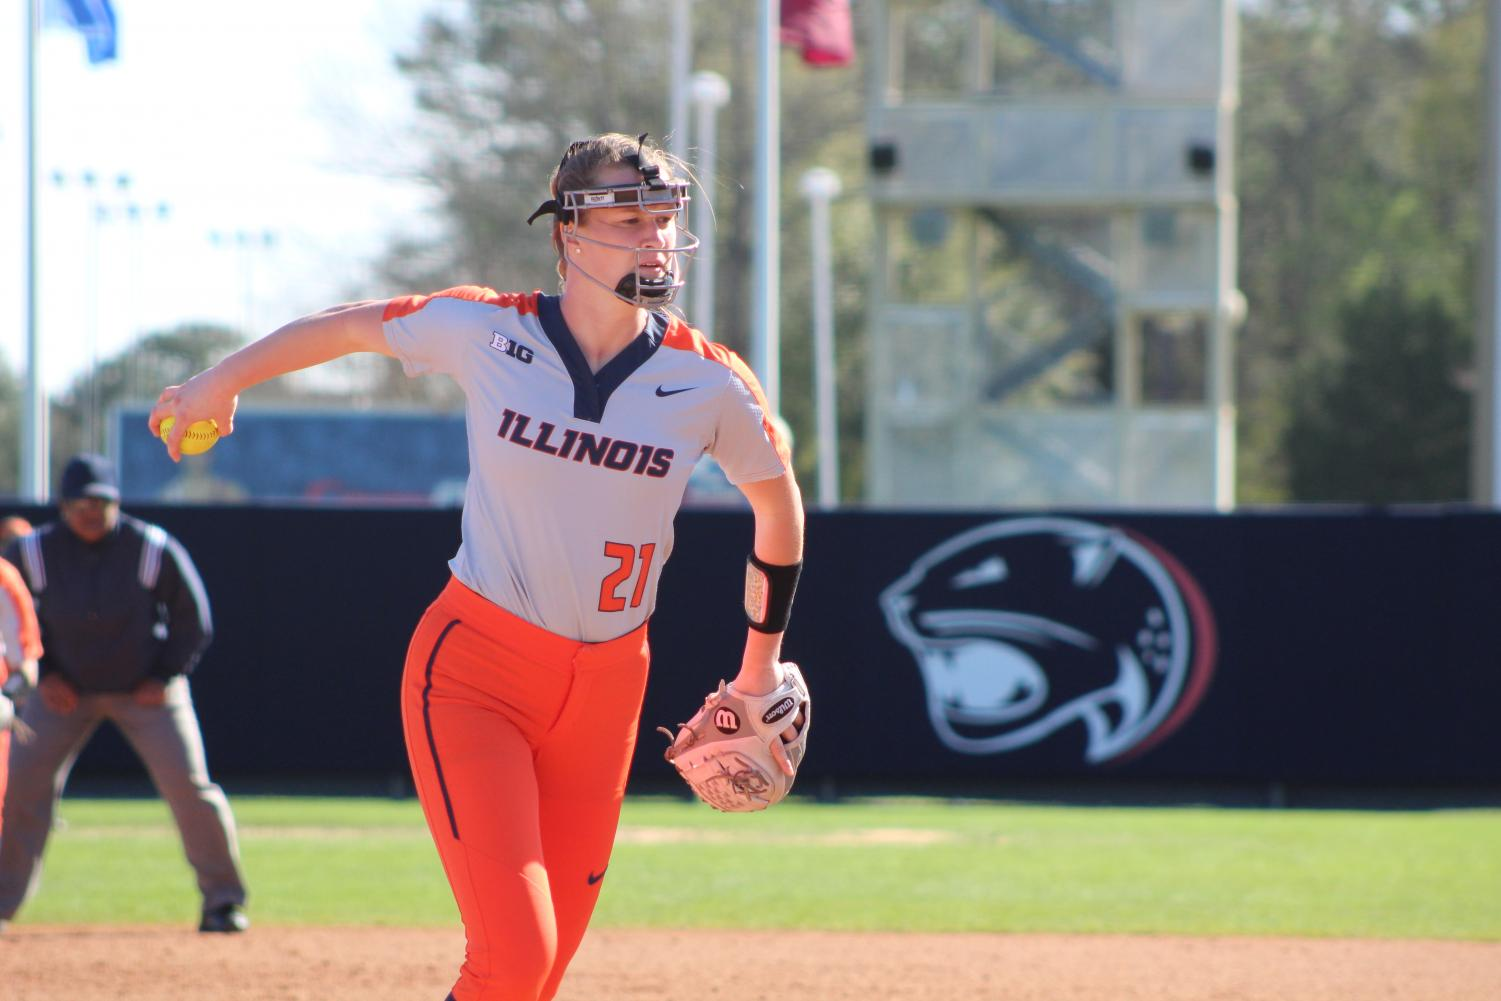 Freshman pitcher Sydney Sickels winds up for a pitch against Nichollas States at the Mardi Gras Classic in Mobile, Alabama. The Illini went on to win the game 5-3 as Sickels continues a strong start to her first-year campaign.